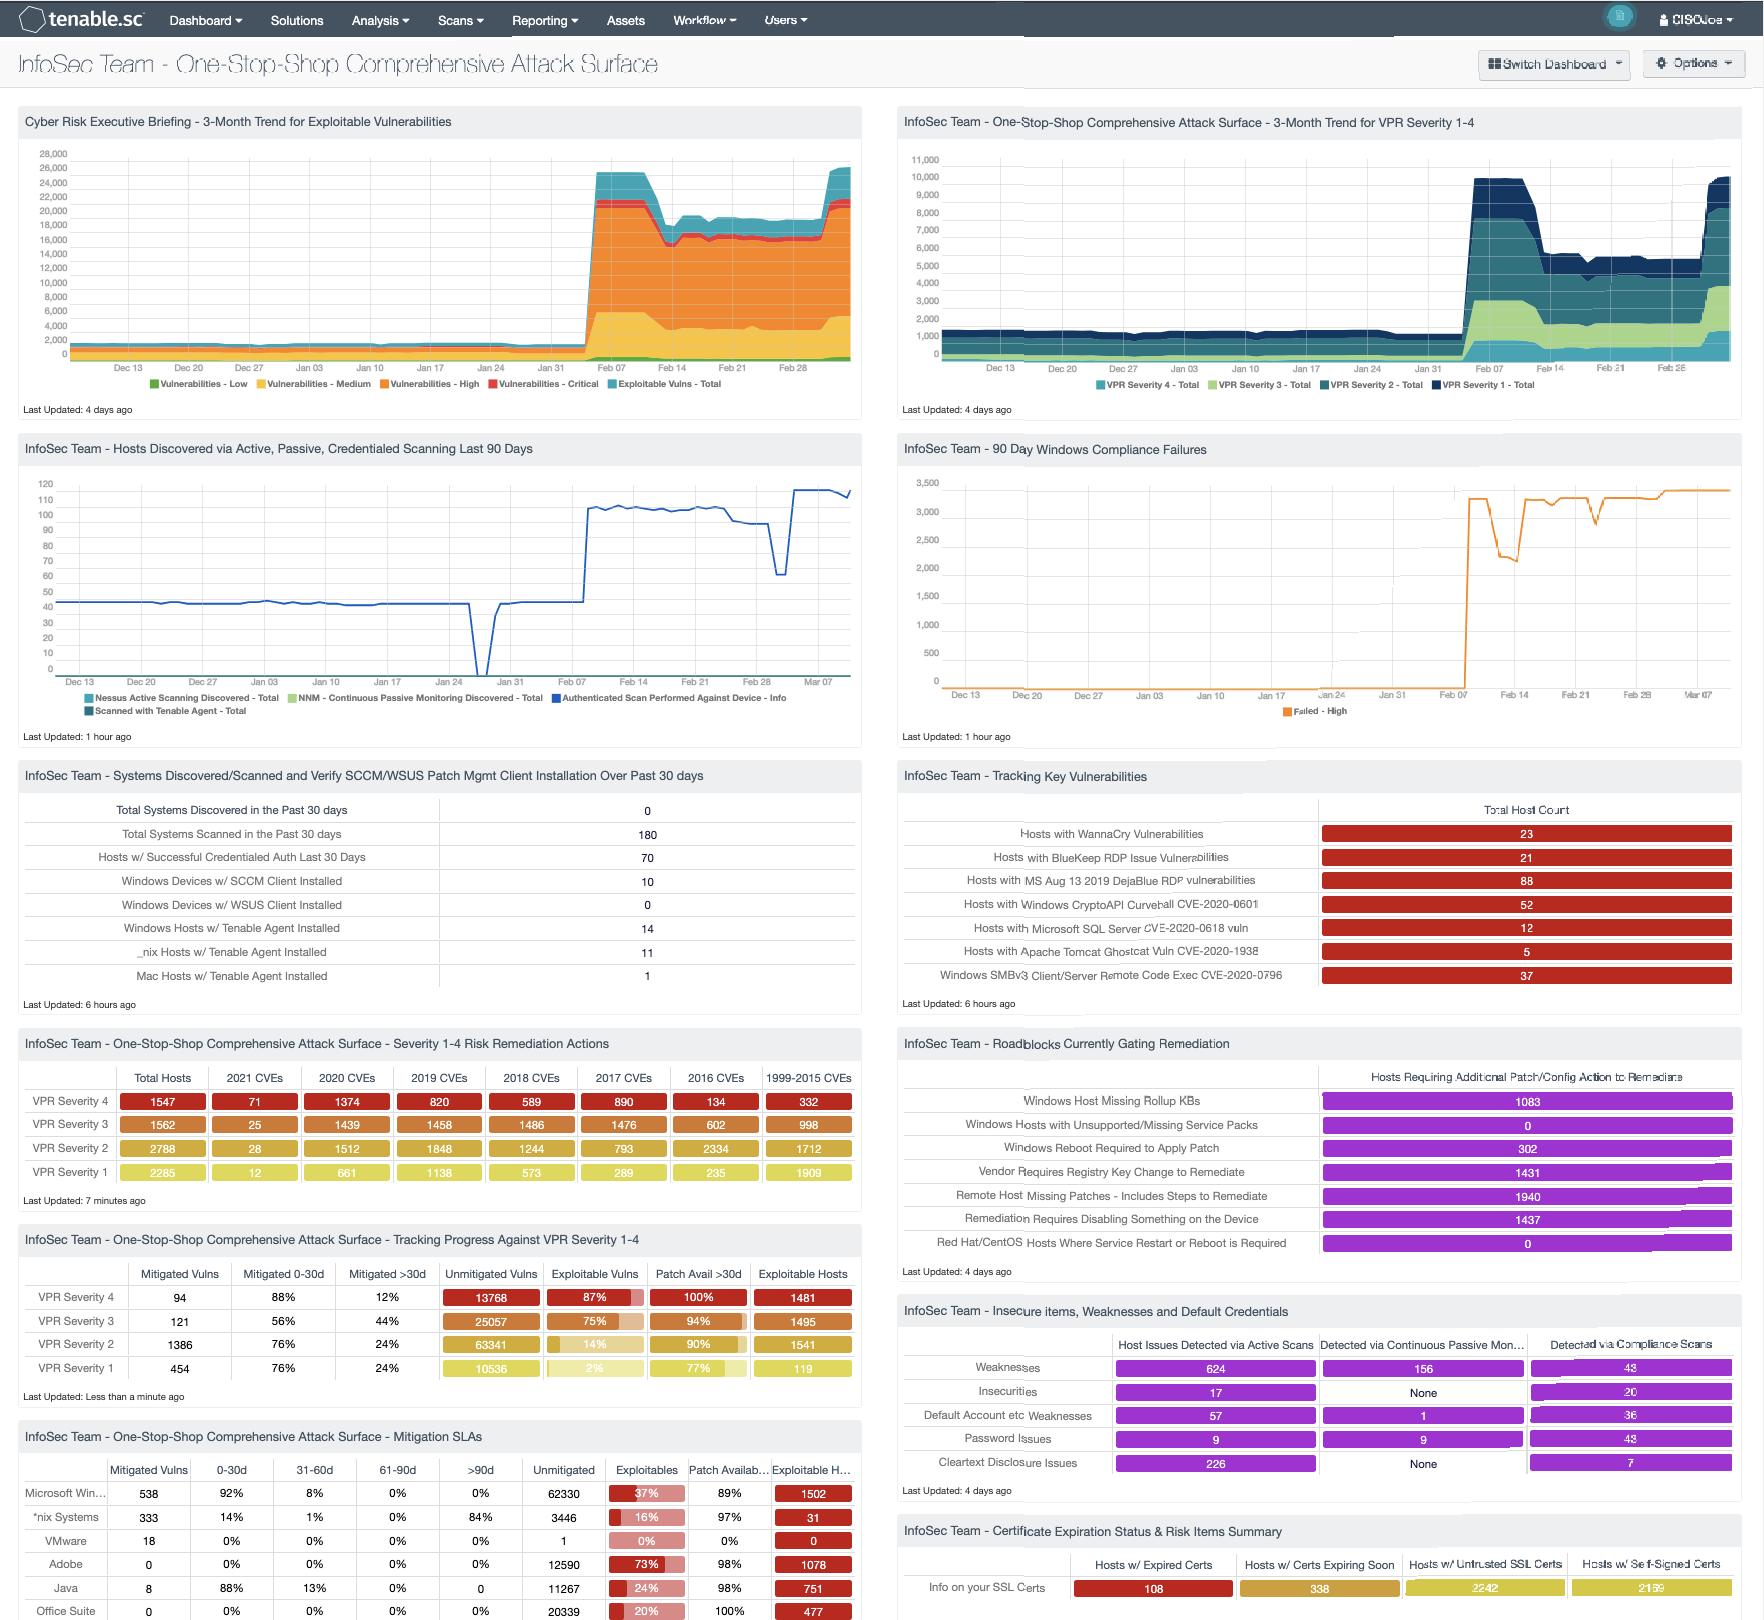 InfoSec Team – One-Stop Shop Comprehensive Attack Surface